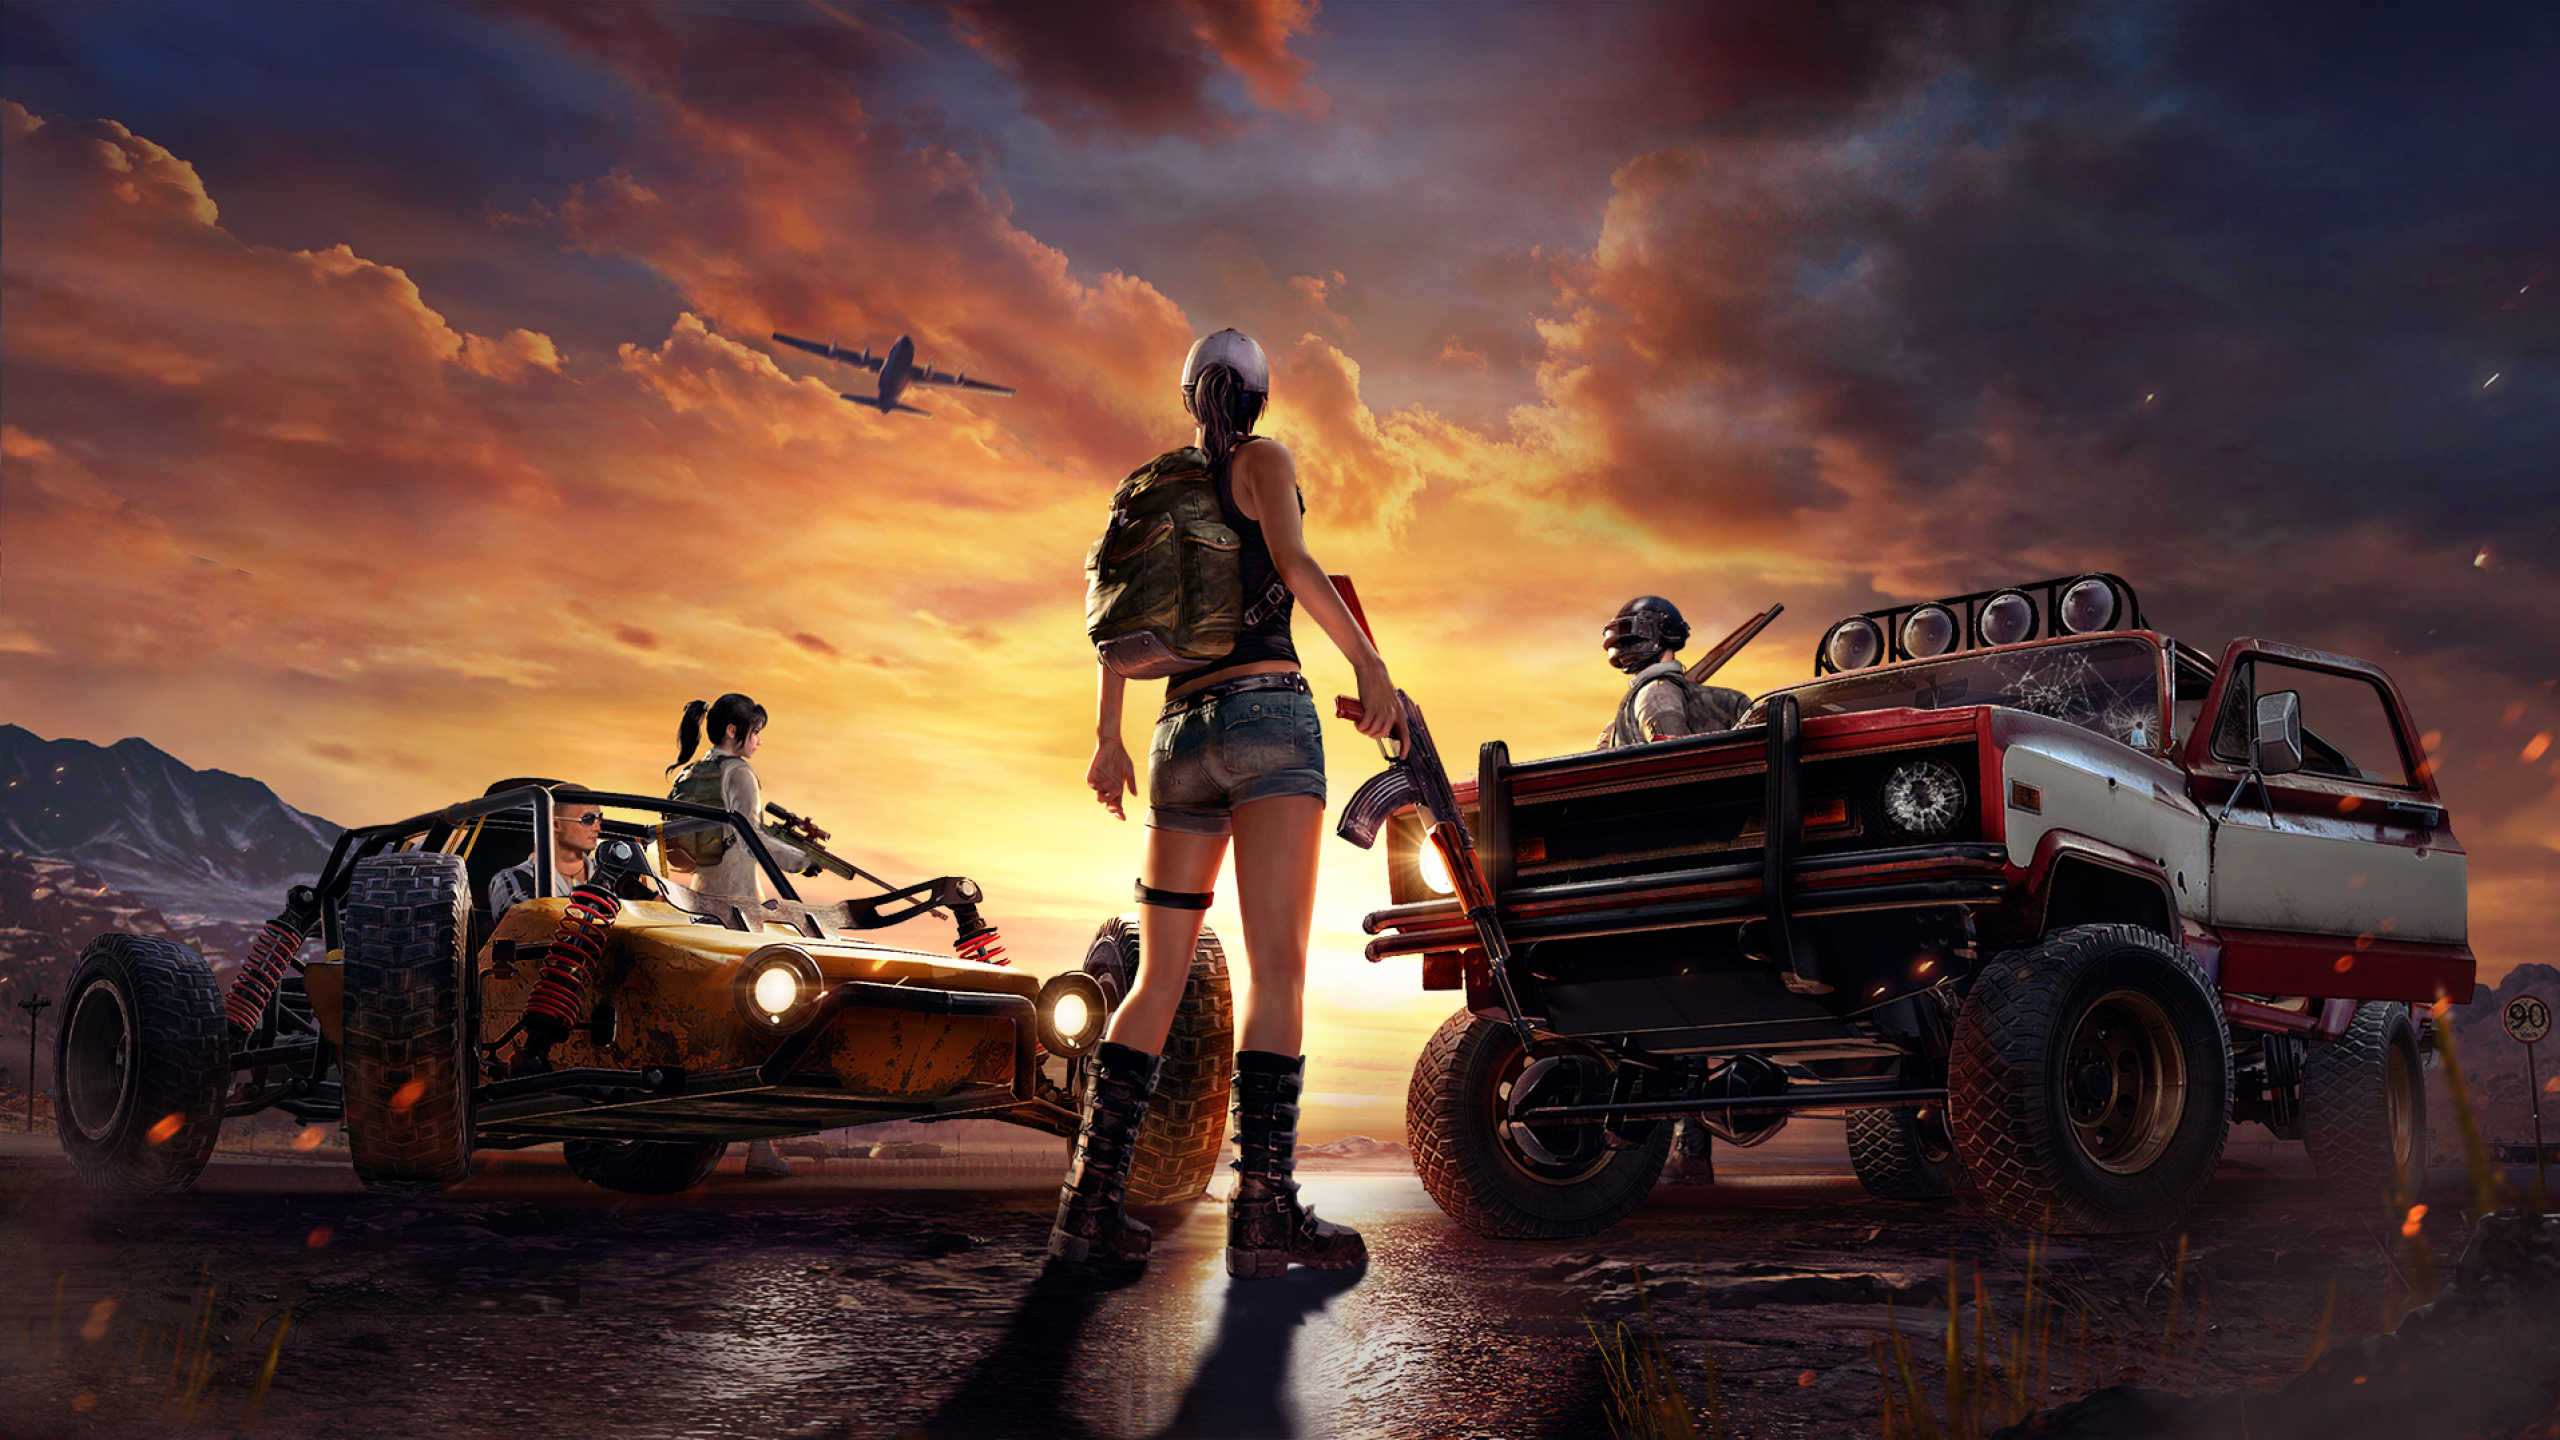 2560x1440 Pubg Lite Pc 1440p Resolution Wallpaper Hd Games 4k Wallpapers Images Photos And Background